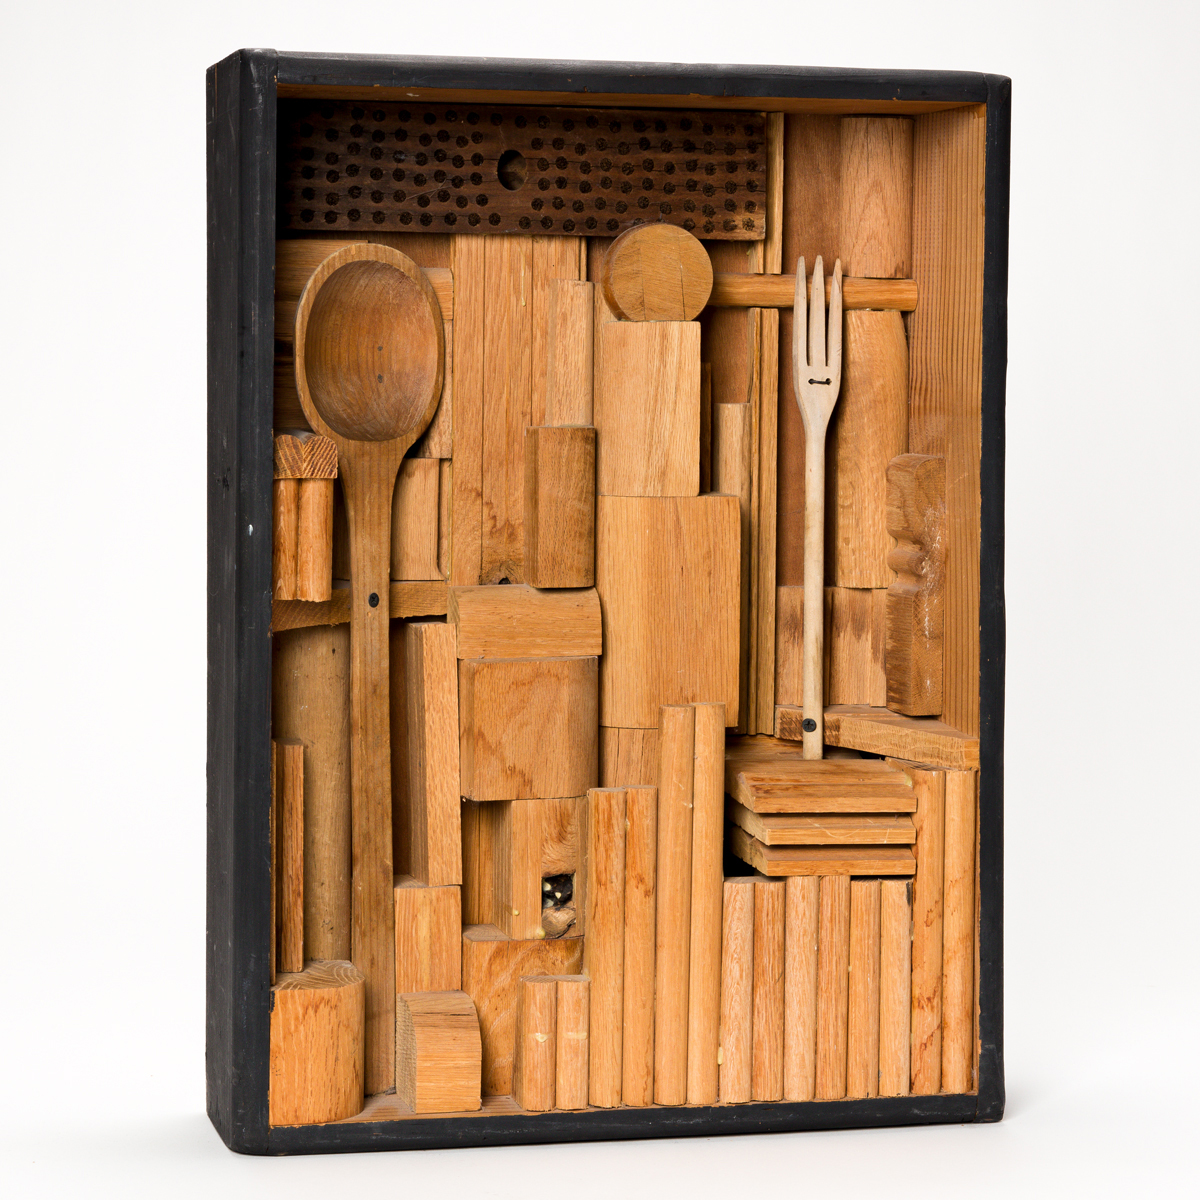 NOAH PURIFOY (1917 - 2004) For Louise Nevelson.